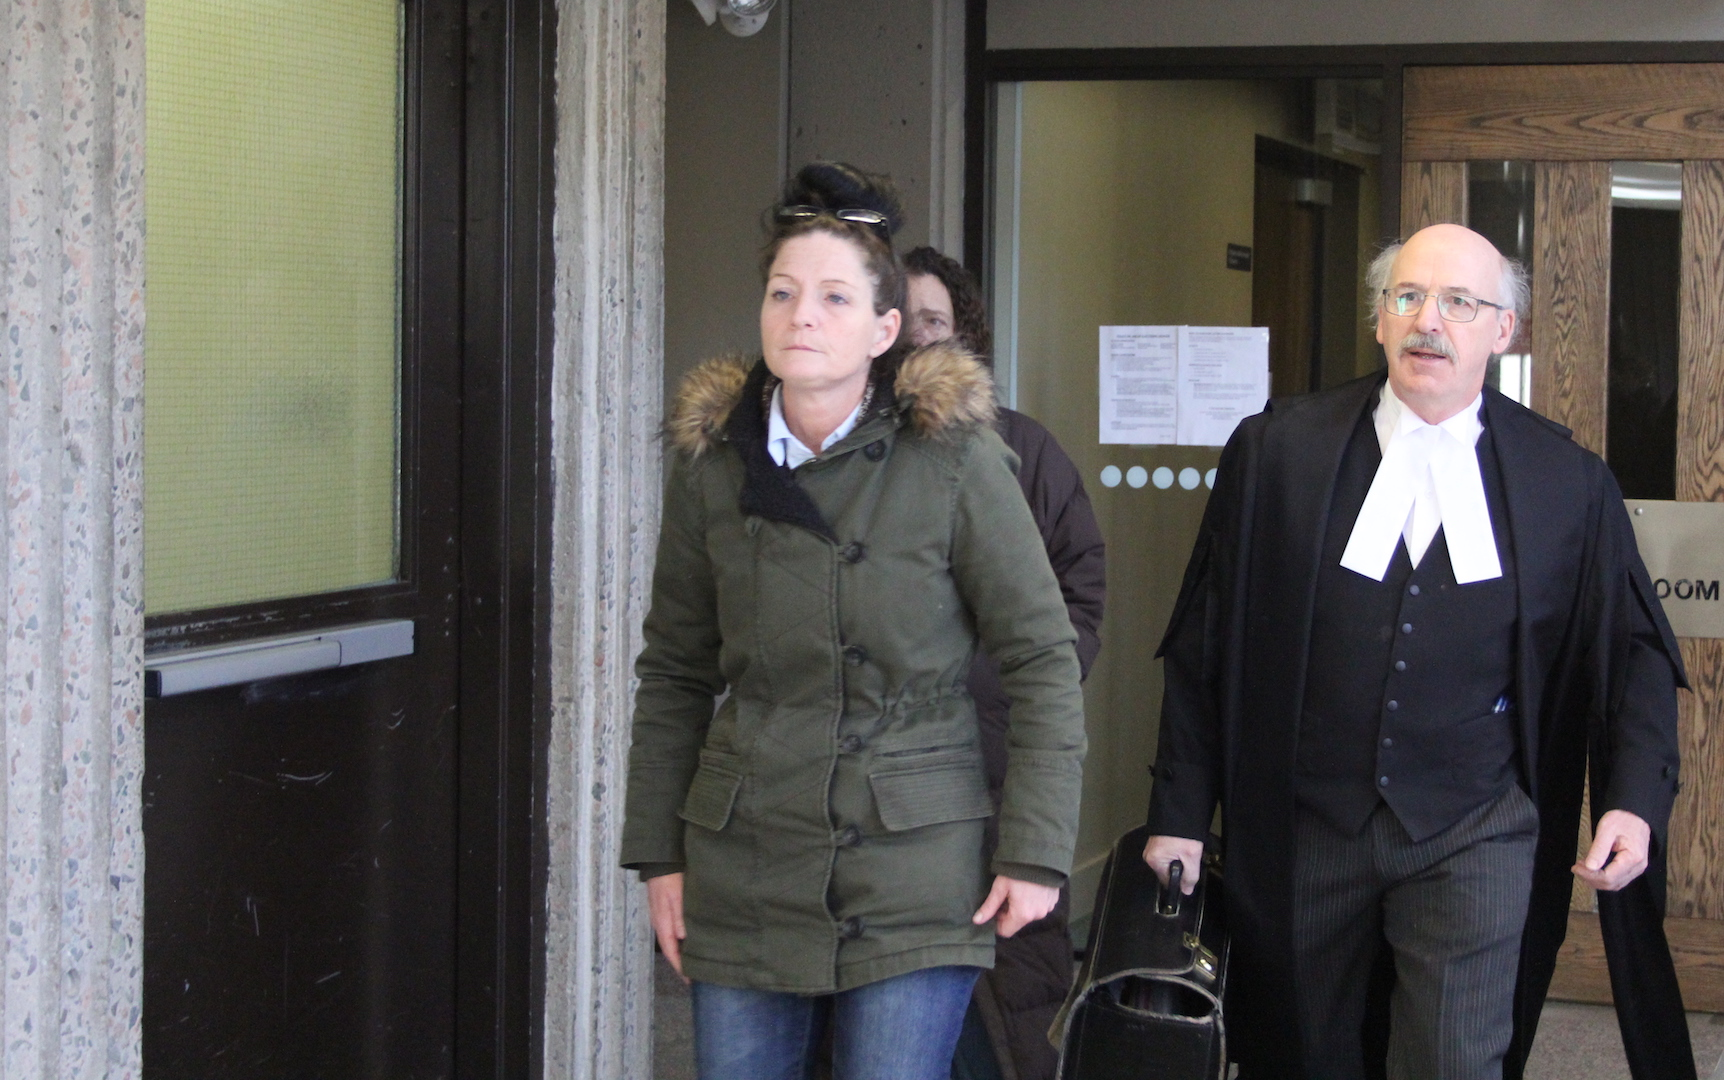 Renee Allison Webber (left) is shown walking into court Thursday.